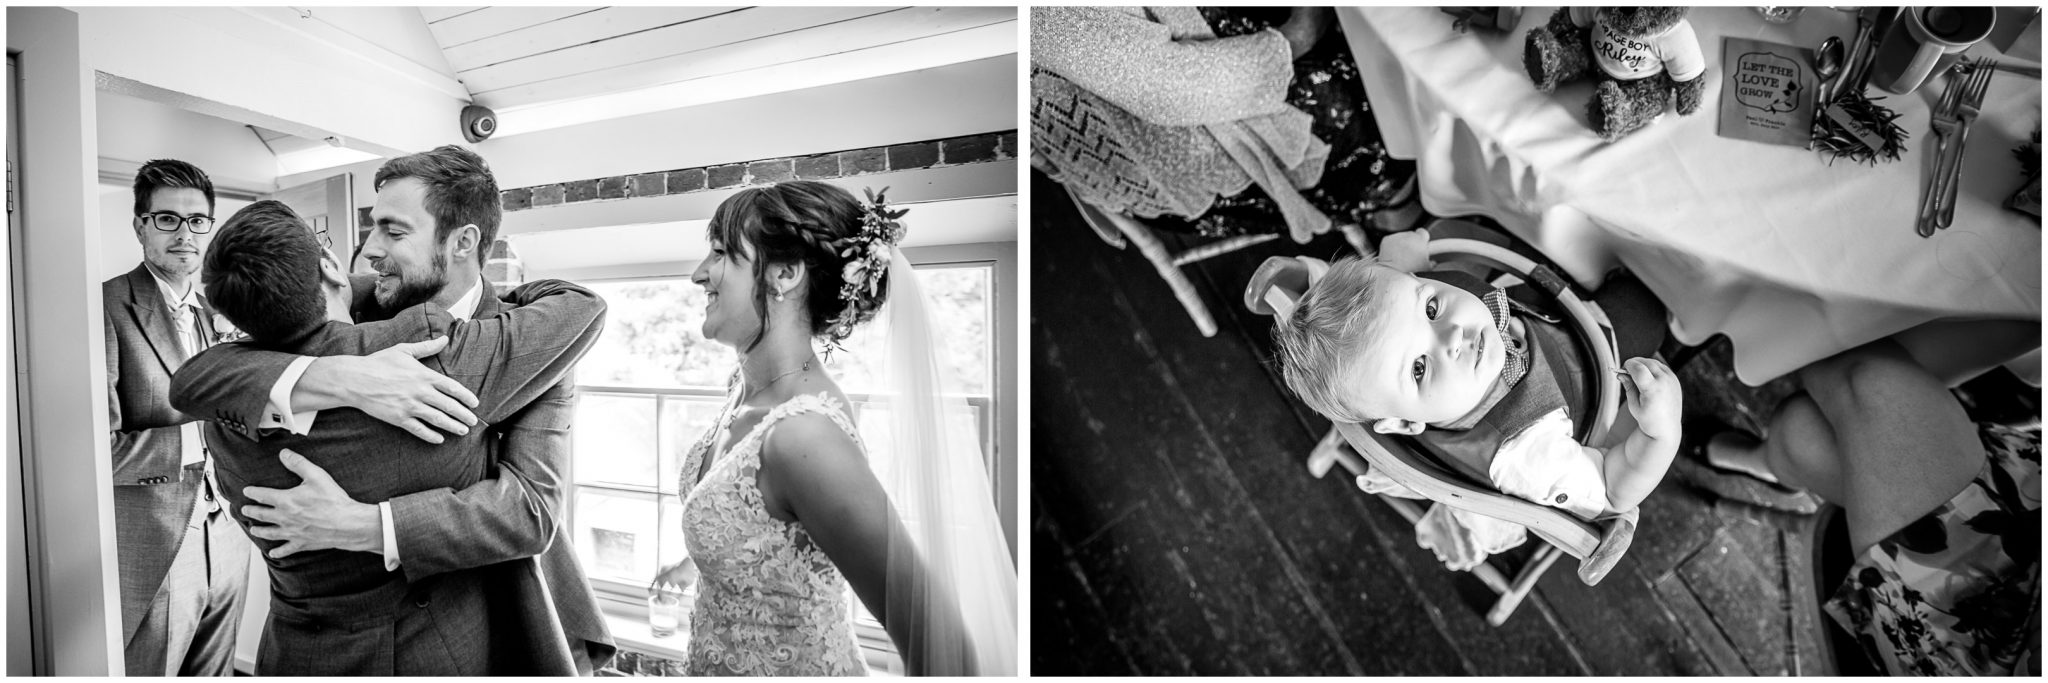 Sopley Mill wedding photography black and white guest photos